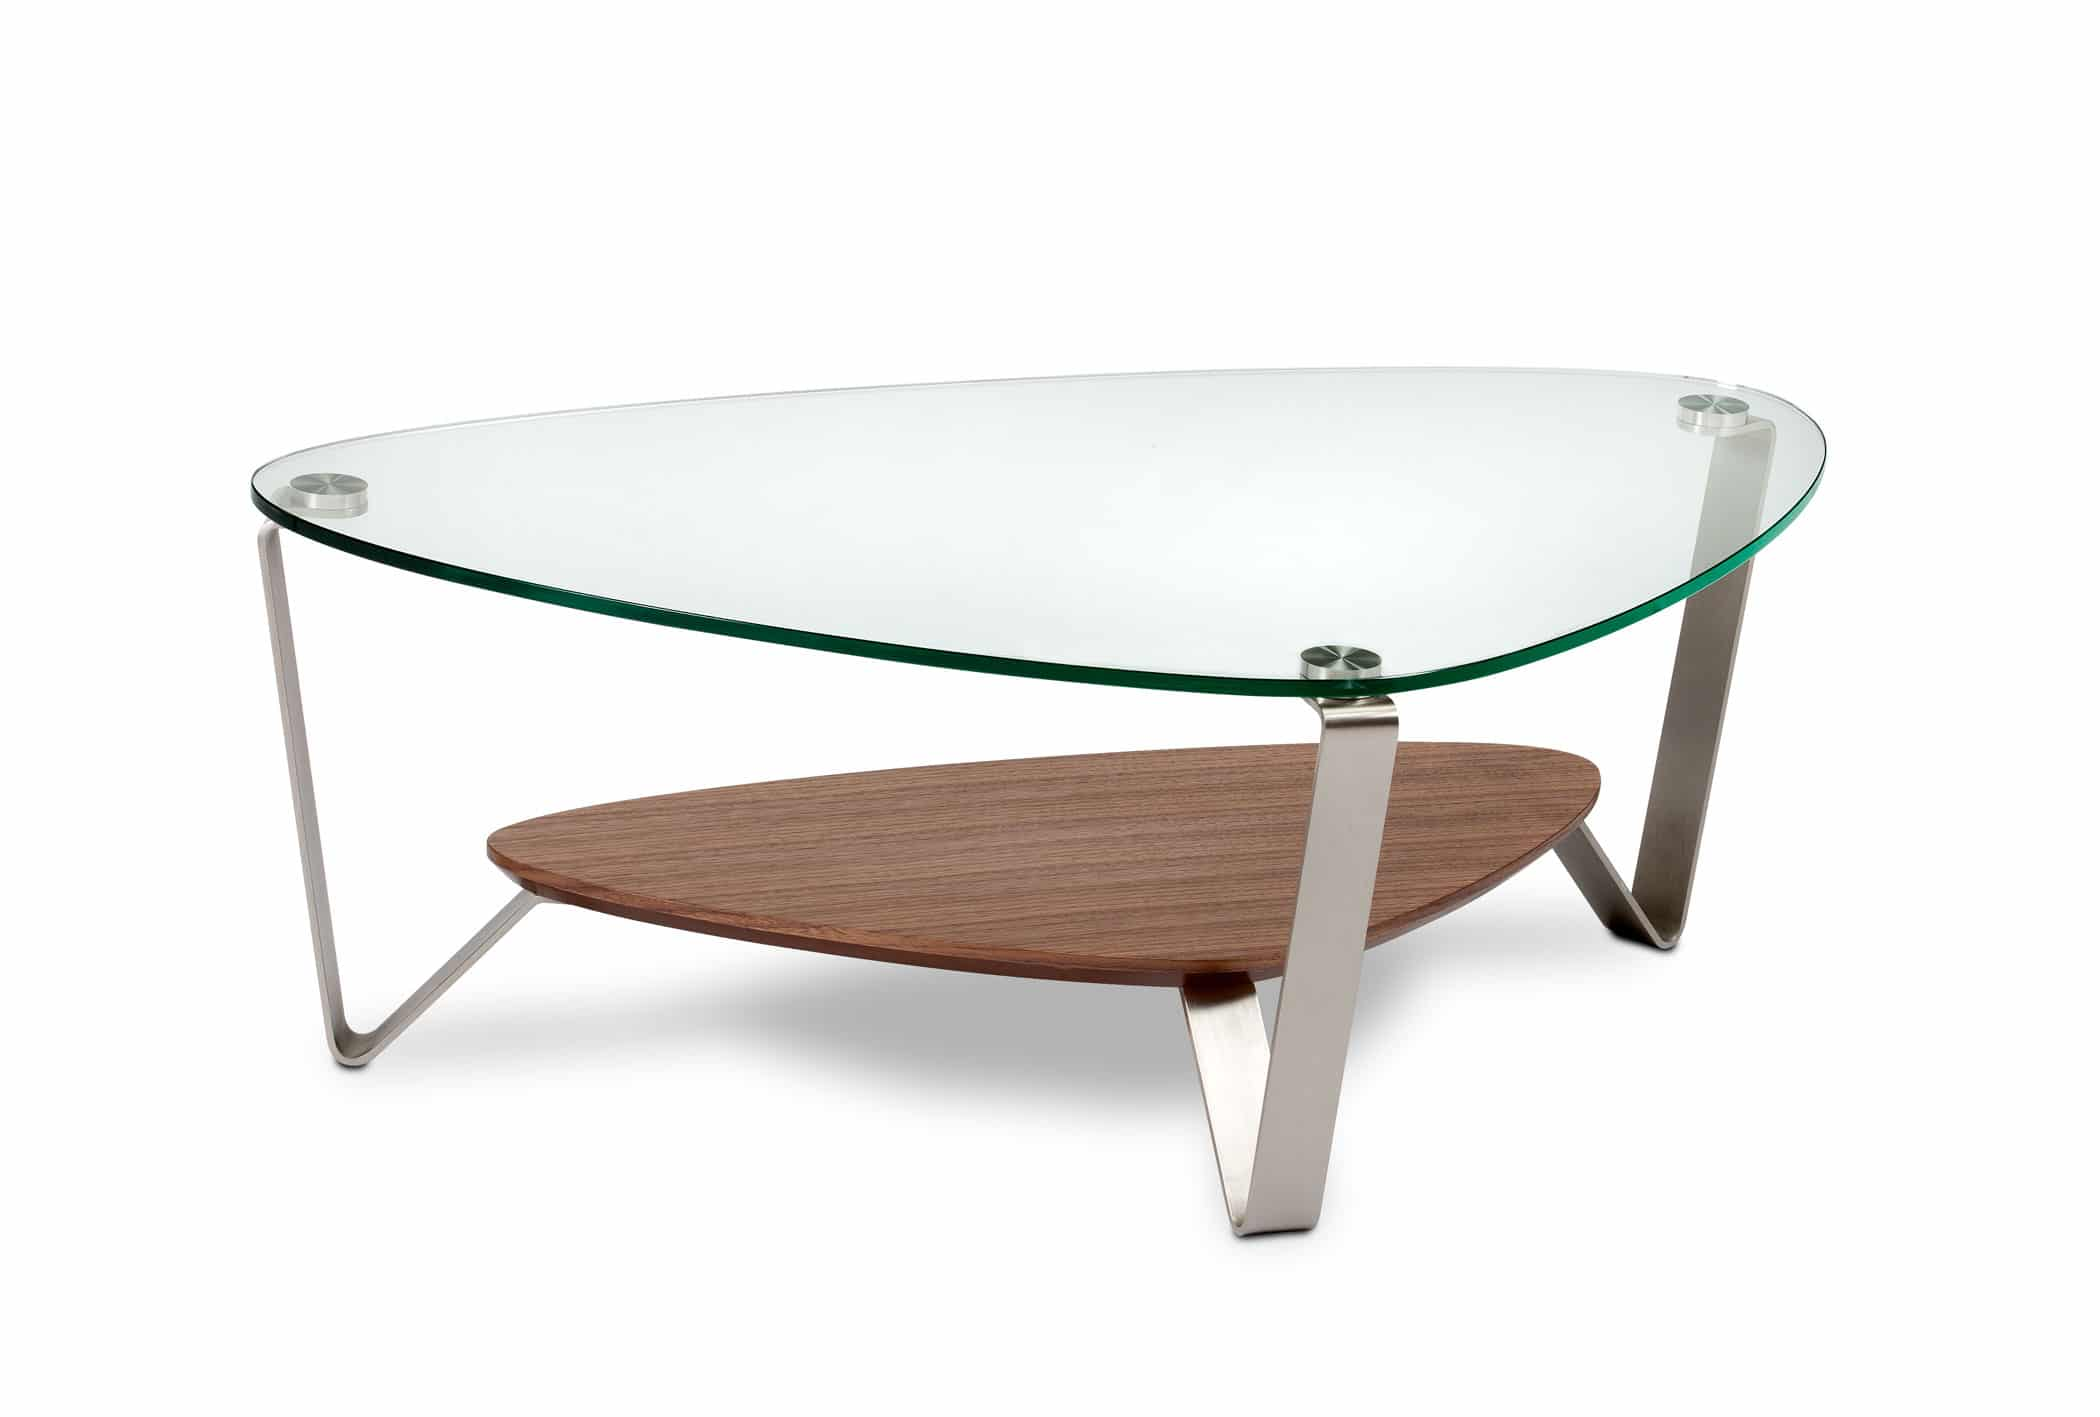 Dino 1344 Small Modern Glass Coffee Table | BDI Furniture